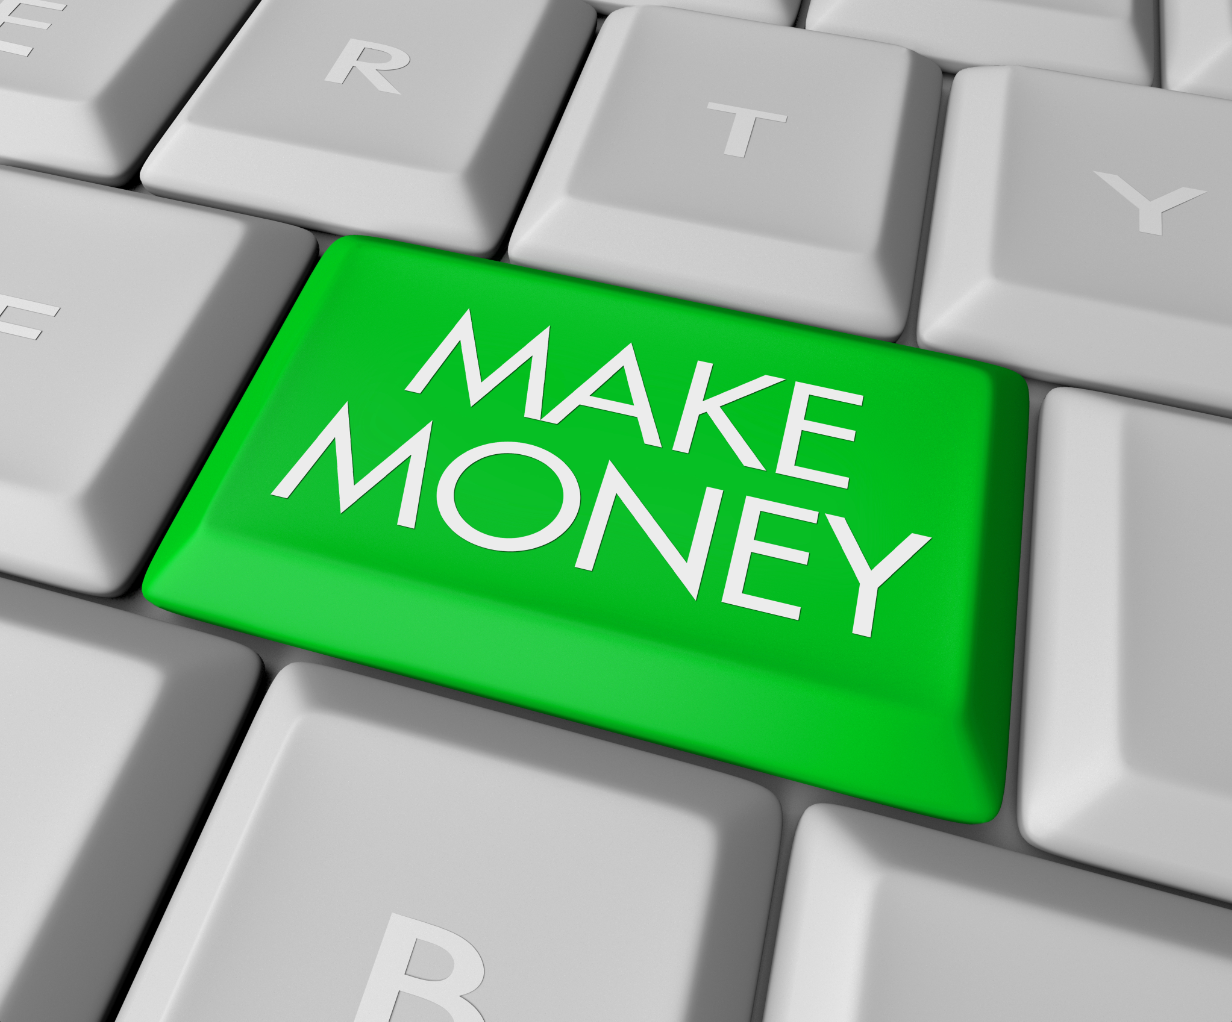 1 minute loans are sufficient financial succor during the hard time for the salary-based folks, who bank on their monthly salary by the end of the month. This monetary facility is very helpful ans effective in time of urgency!  http://www.cashloansinminutes.com/1-minute-loans.html